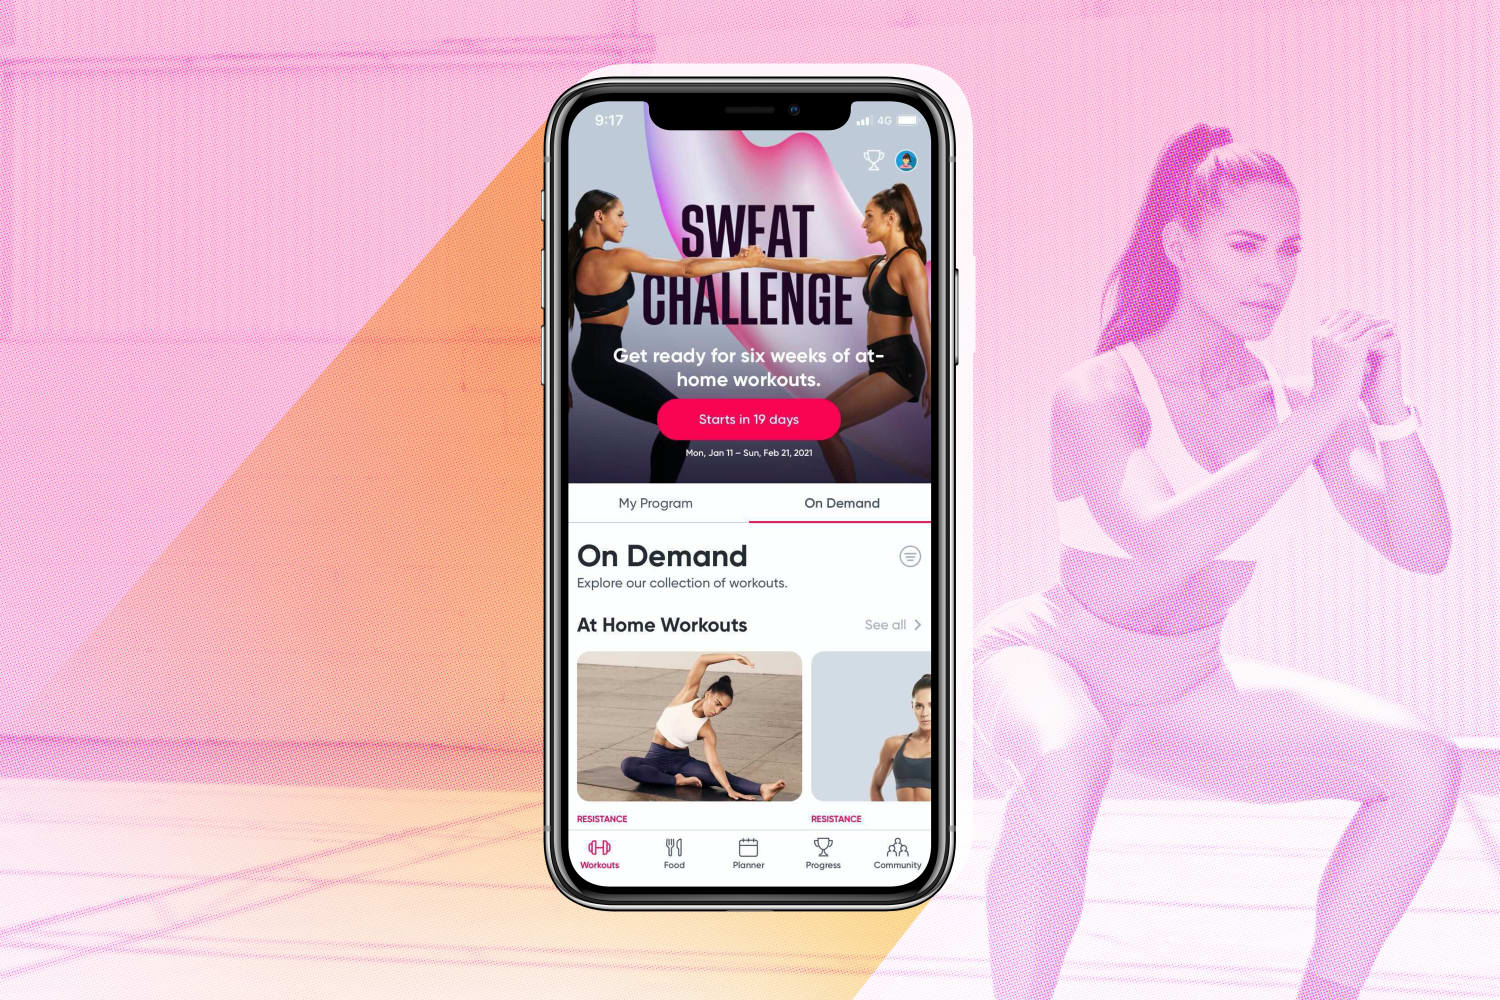 This $20 App Is Proof You Can Get a Seriously Effective Workout Done in Under 30 Minutes